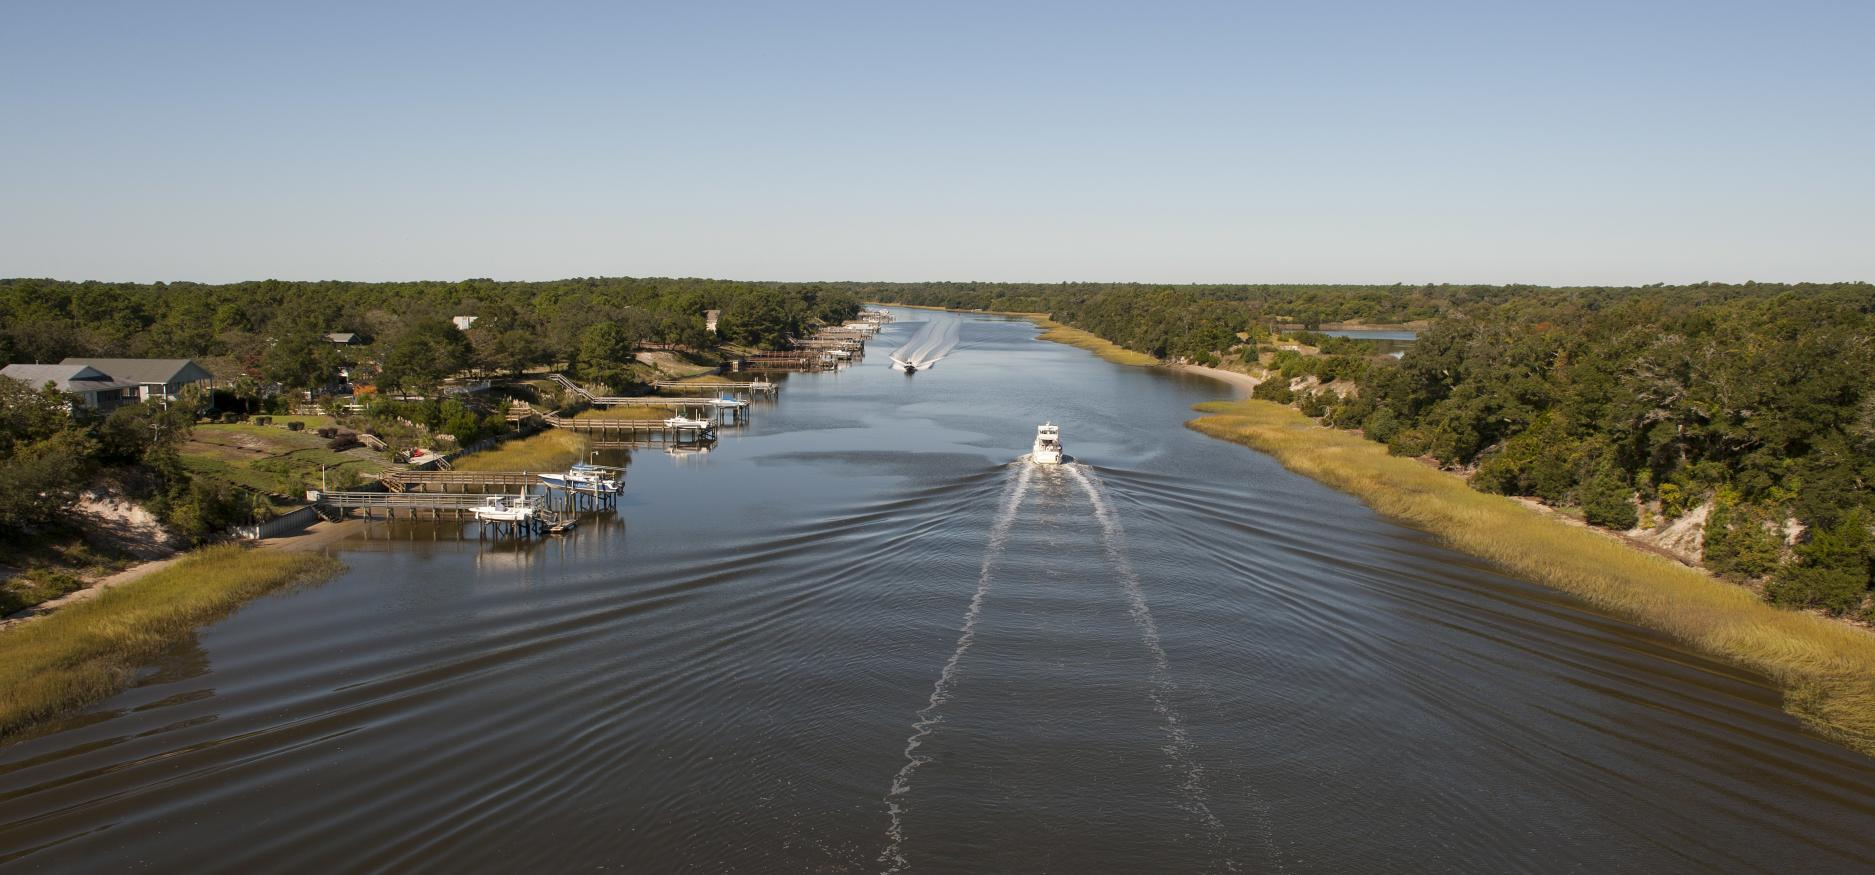 Boating in the Intracoastal Waterway in Oak Island